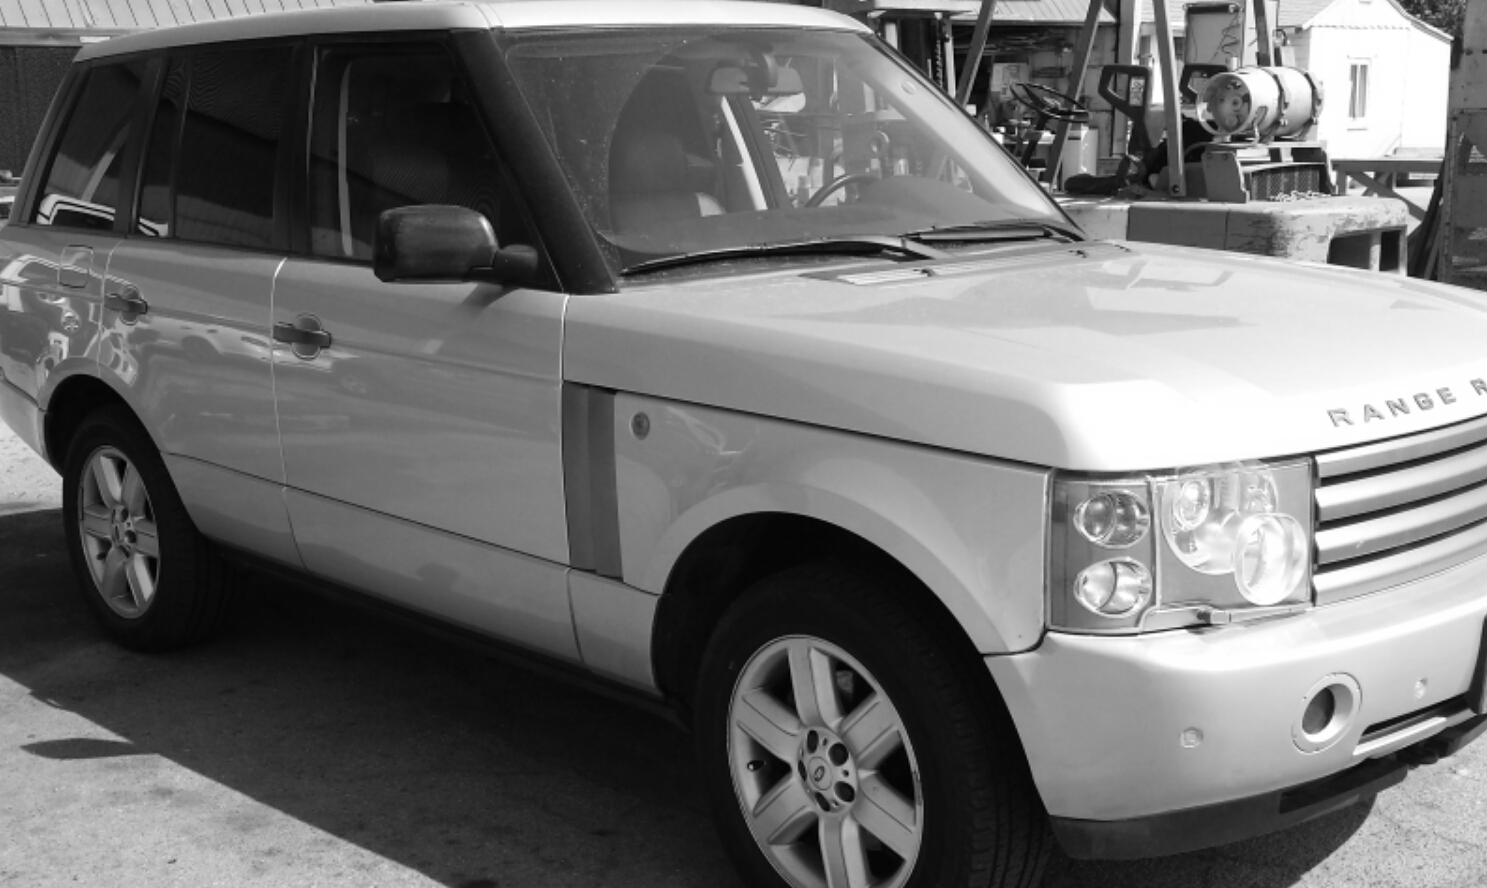 Range Rover Steering Columns Key Will Not Turn In Ignition 2007 Sport Supercharged Firing Order With Diagrams And Images 2003 2004 2005 2006